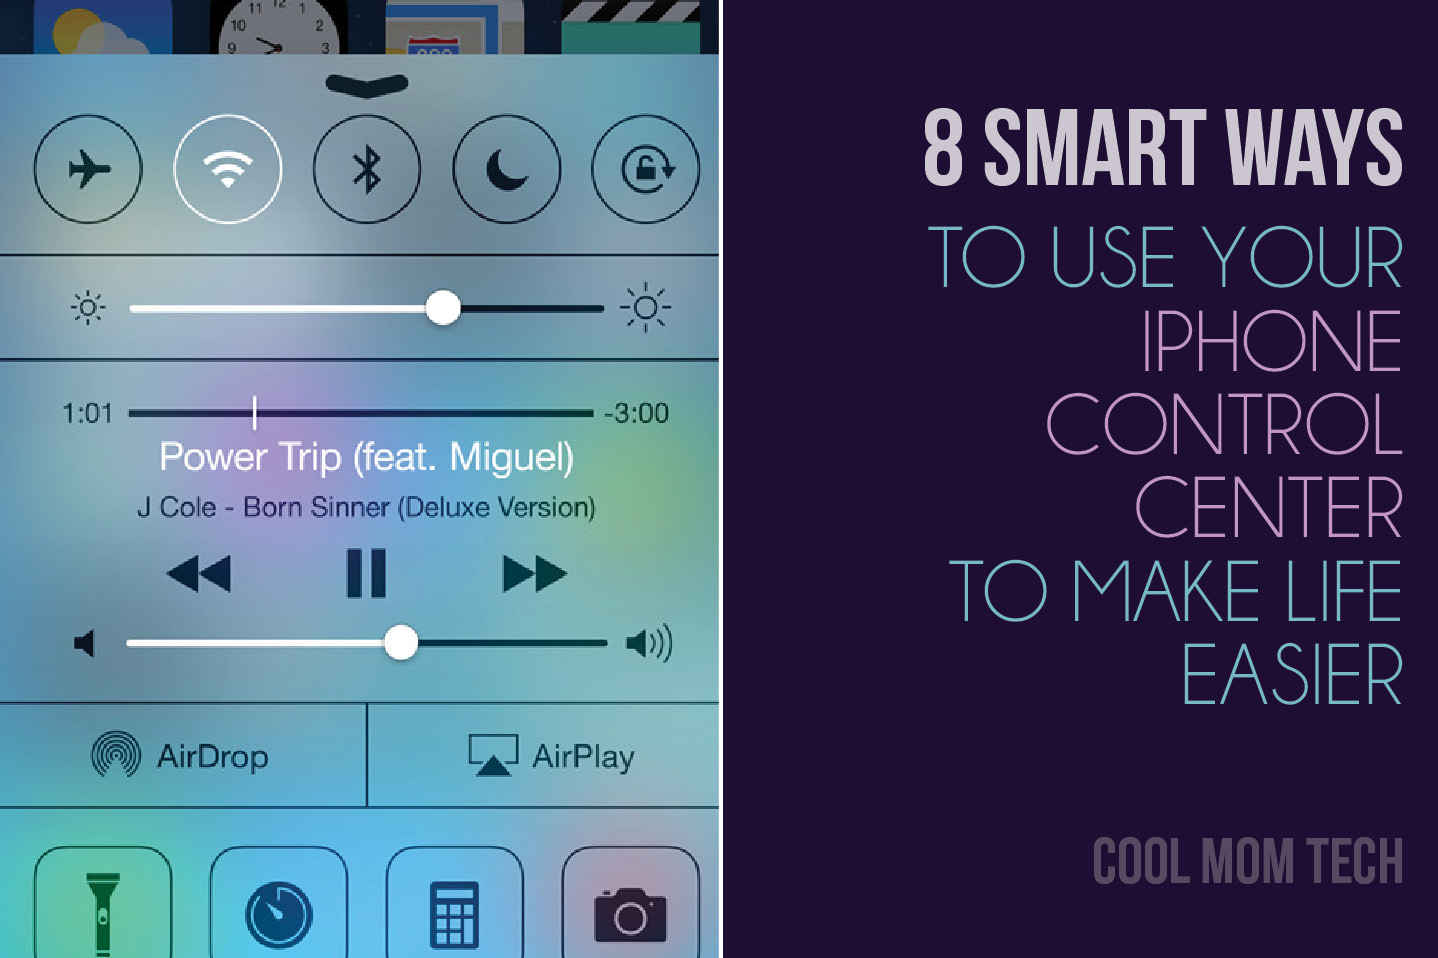 8 smart ways to use your iPhone Control Center to make life easier